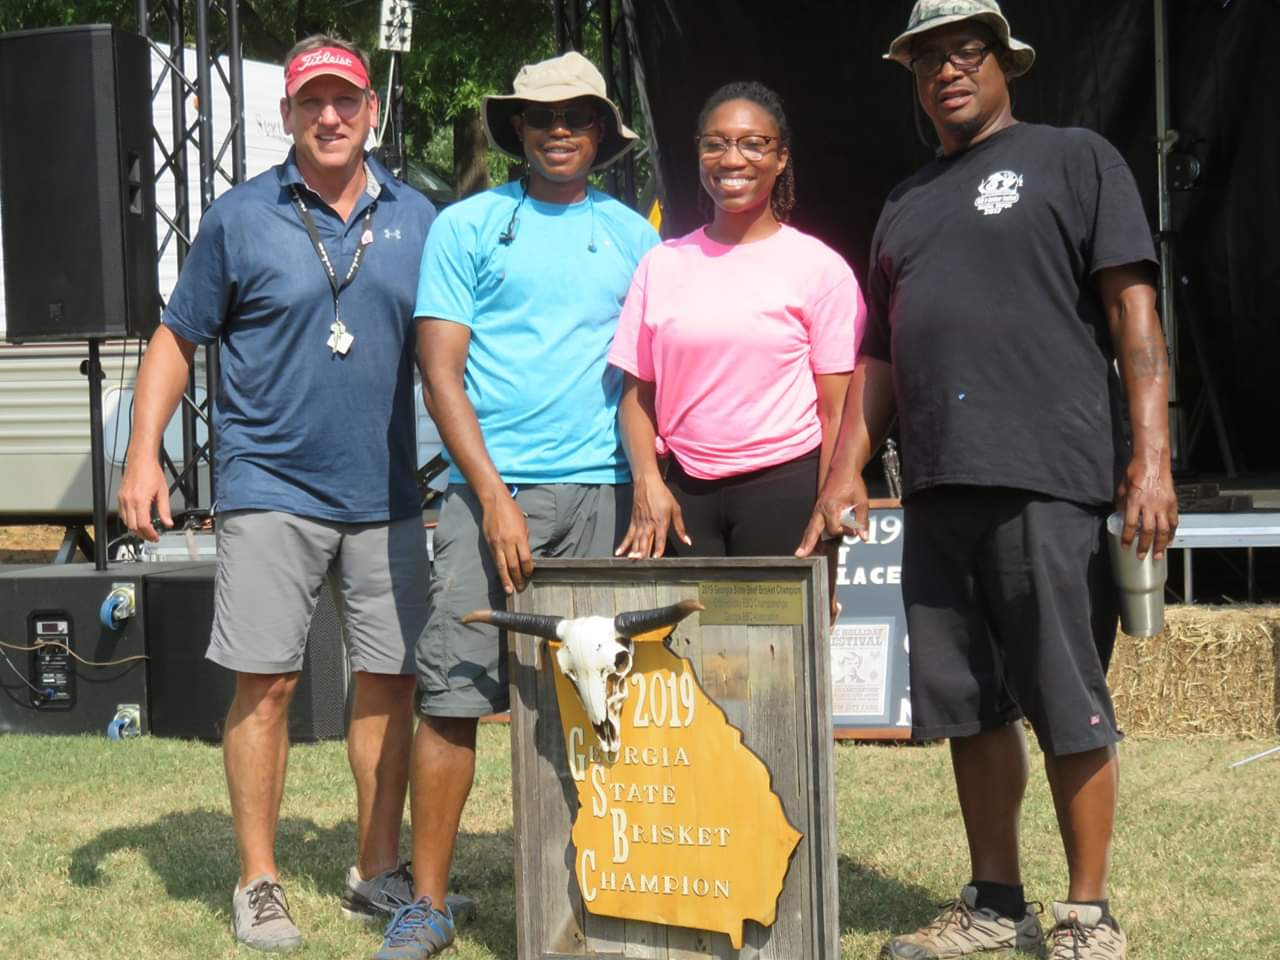 Georgia State Brisket Champion Oakridge BBQ Black Ops